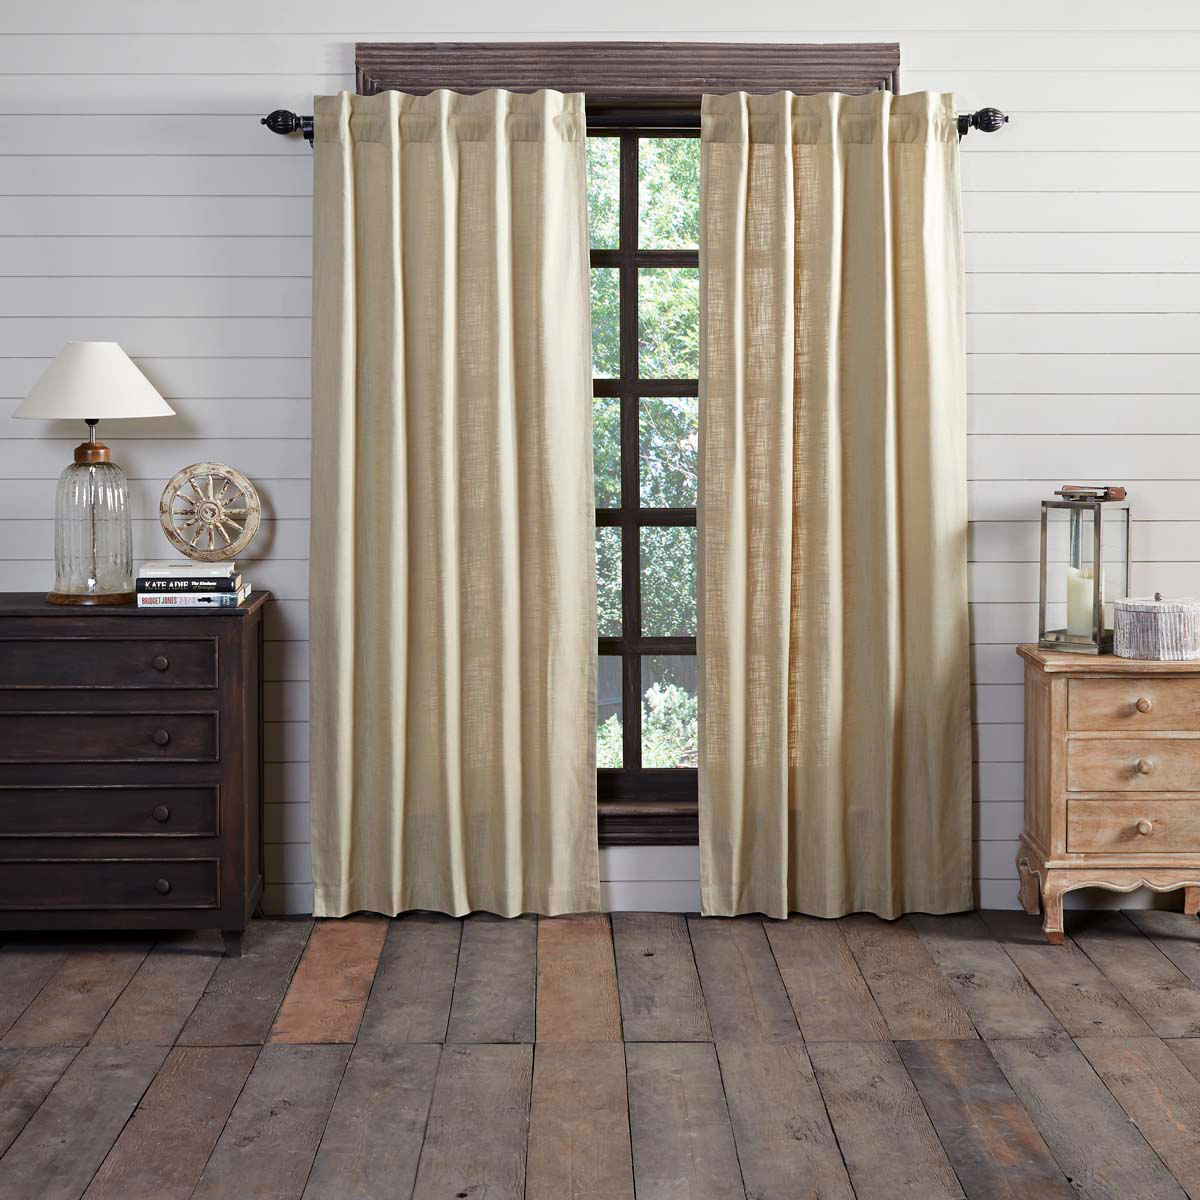 REGINA KHAKI PANEL SET OF 2 84X40 ~ Oatmeal Country Curtains - $47.02